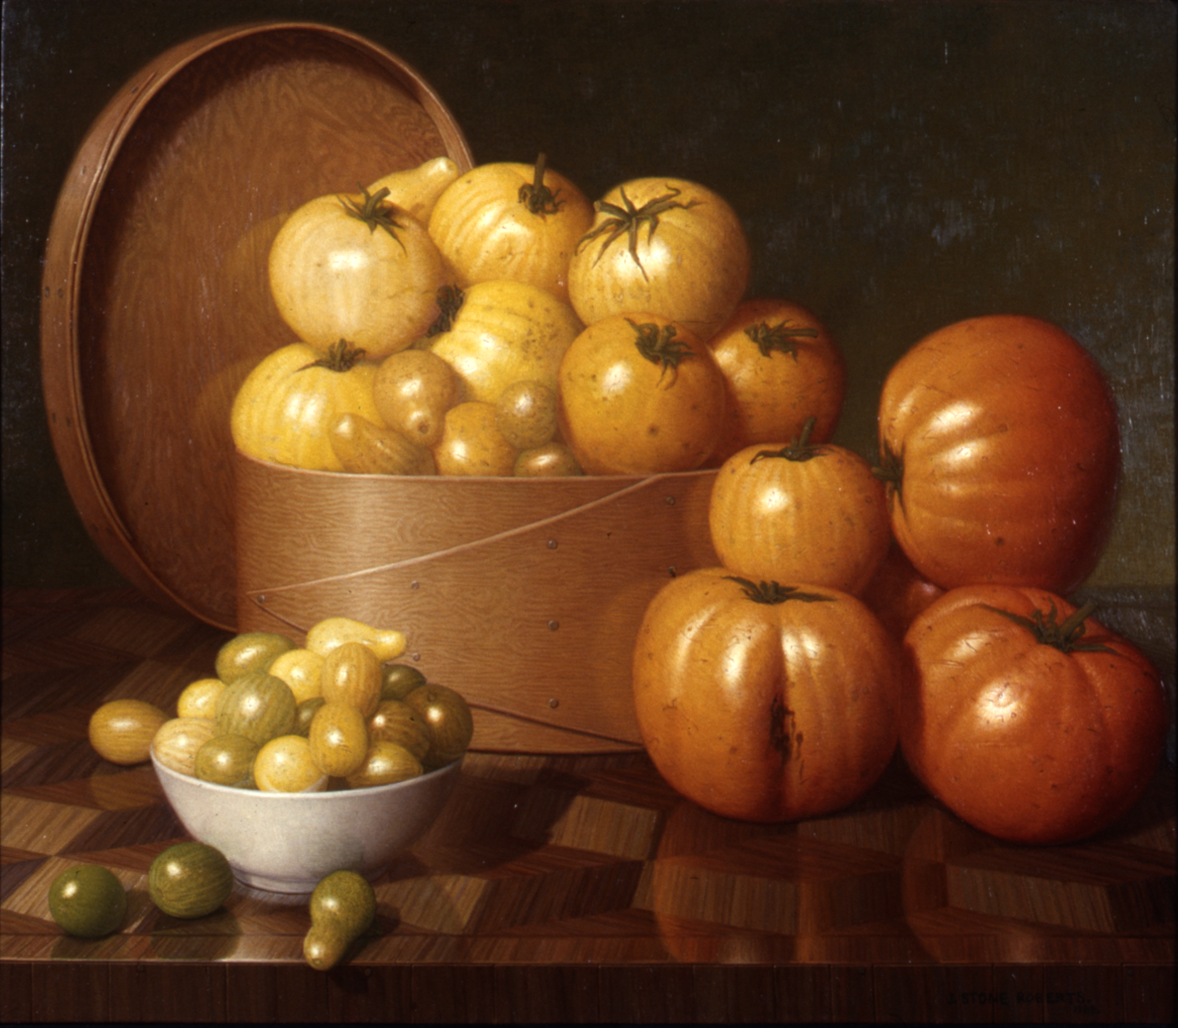 YELLOW TOMATOES (1987/88)